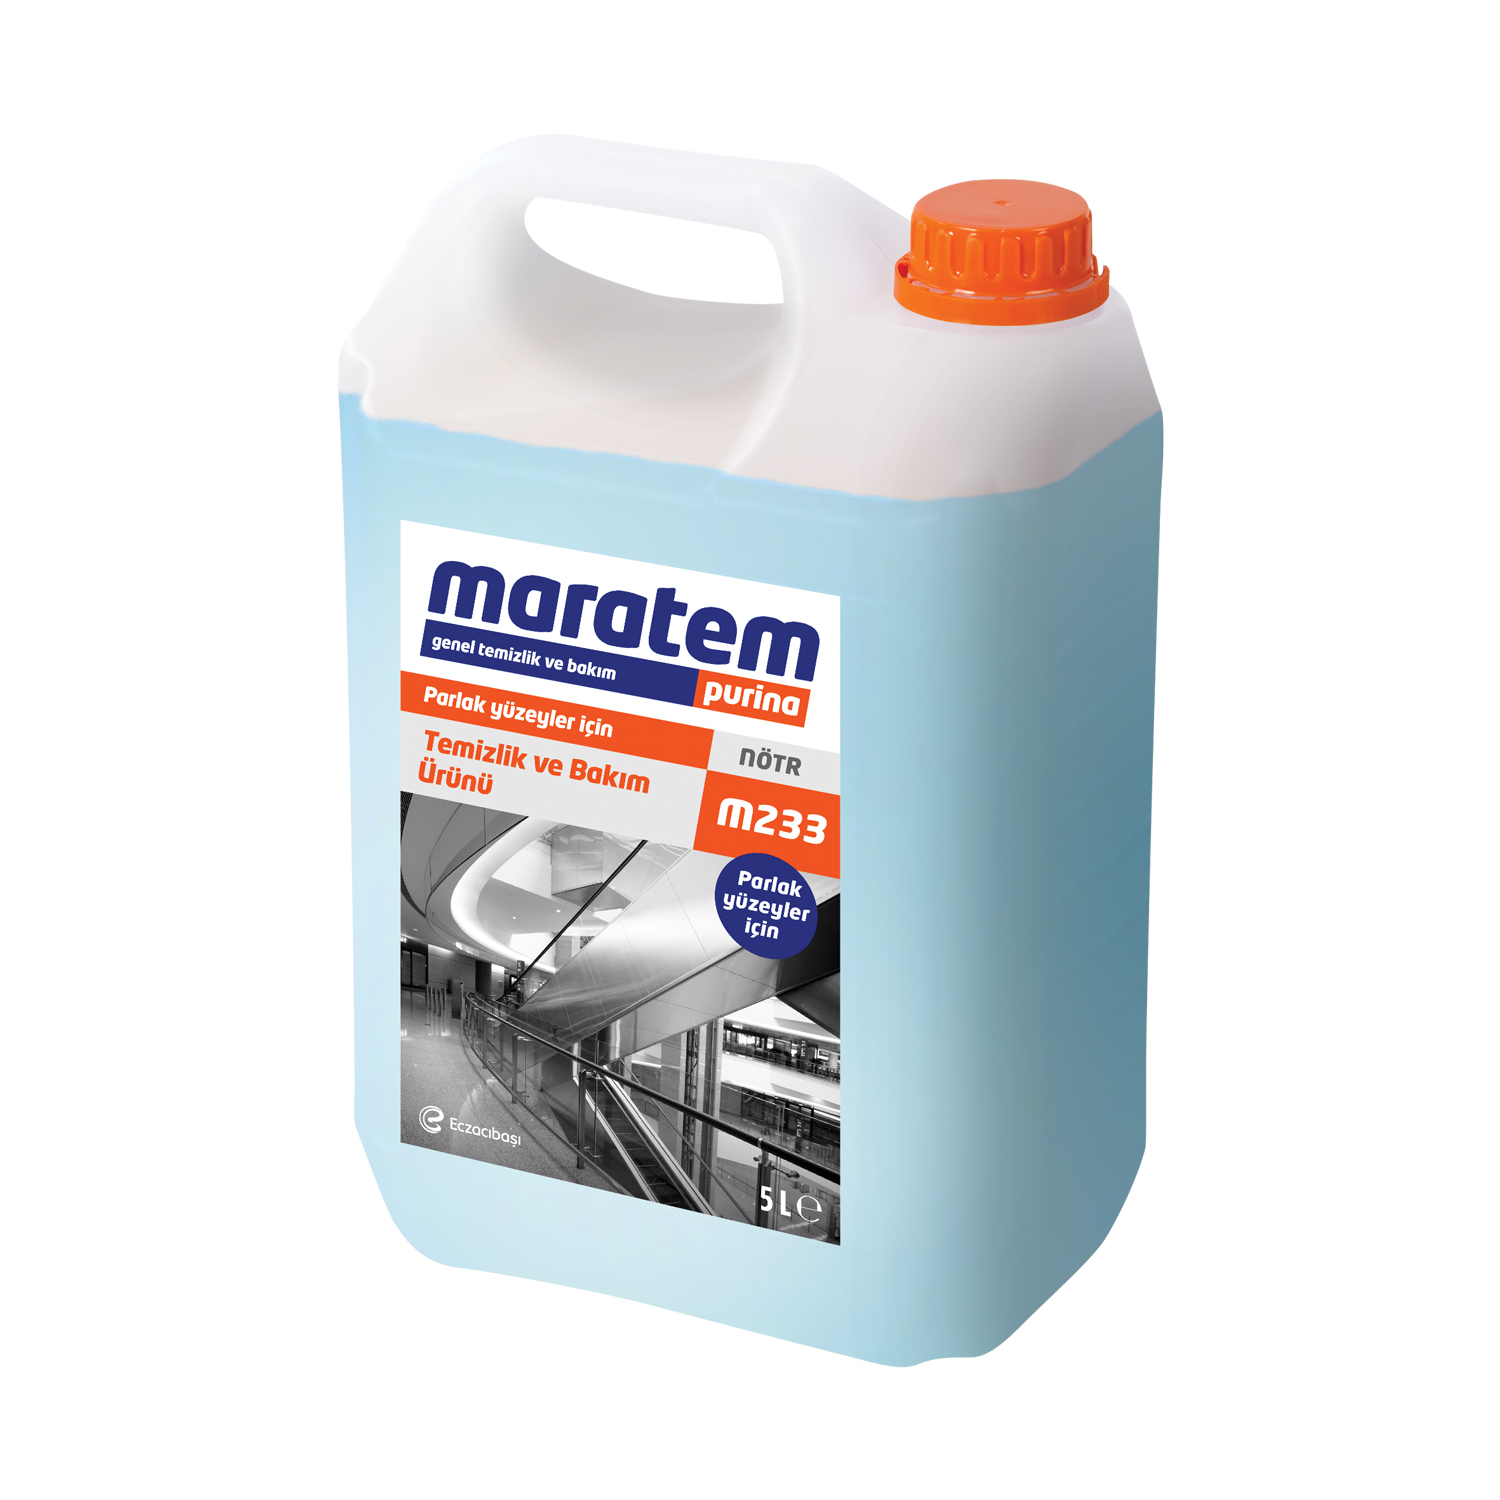 M233 Shiny Surfaces Cleaner and Maintainer